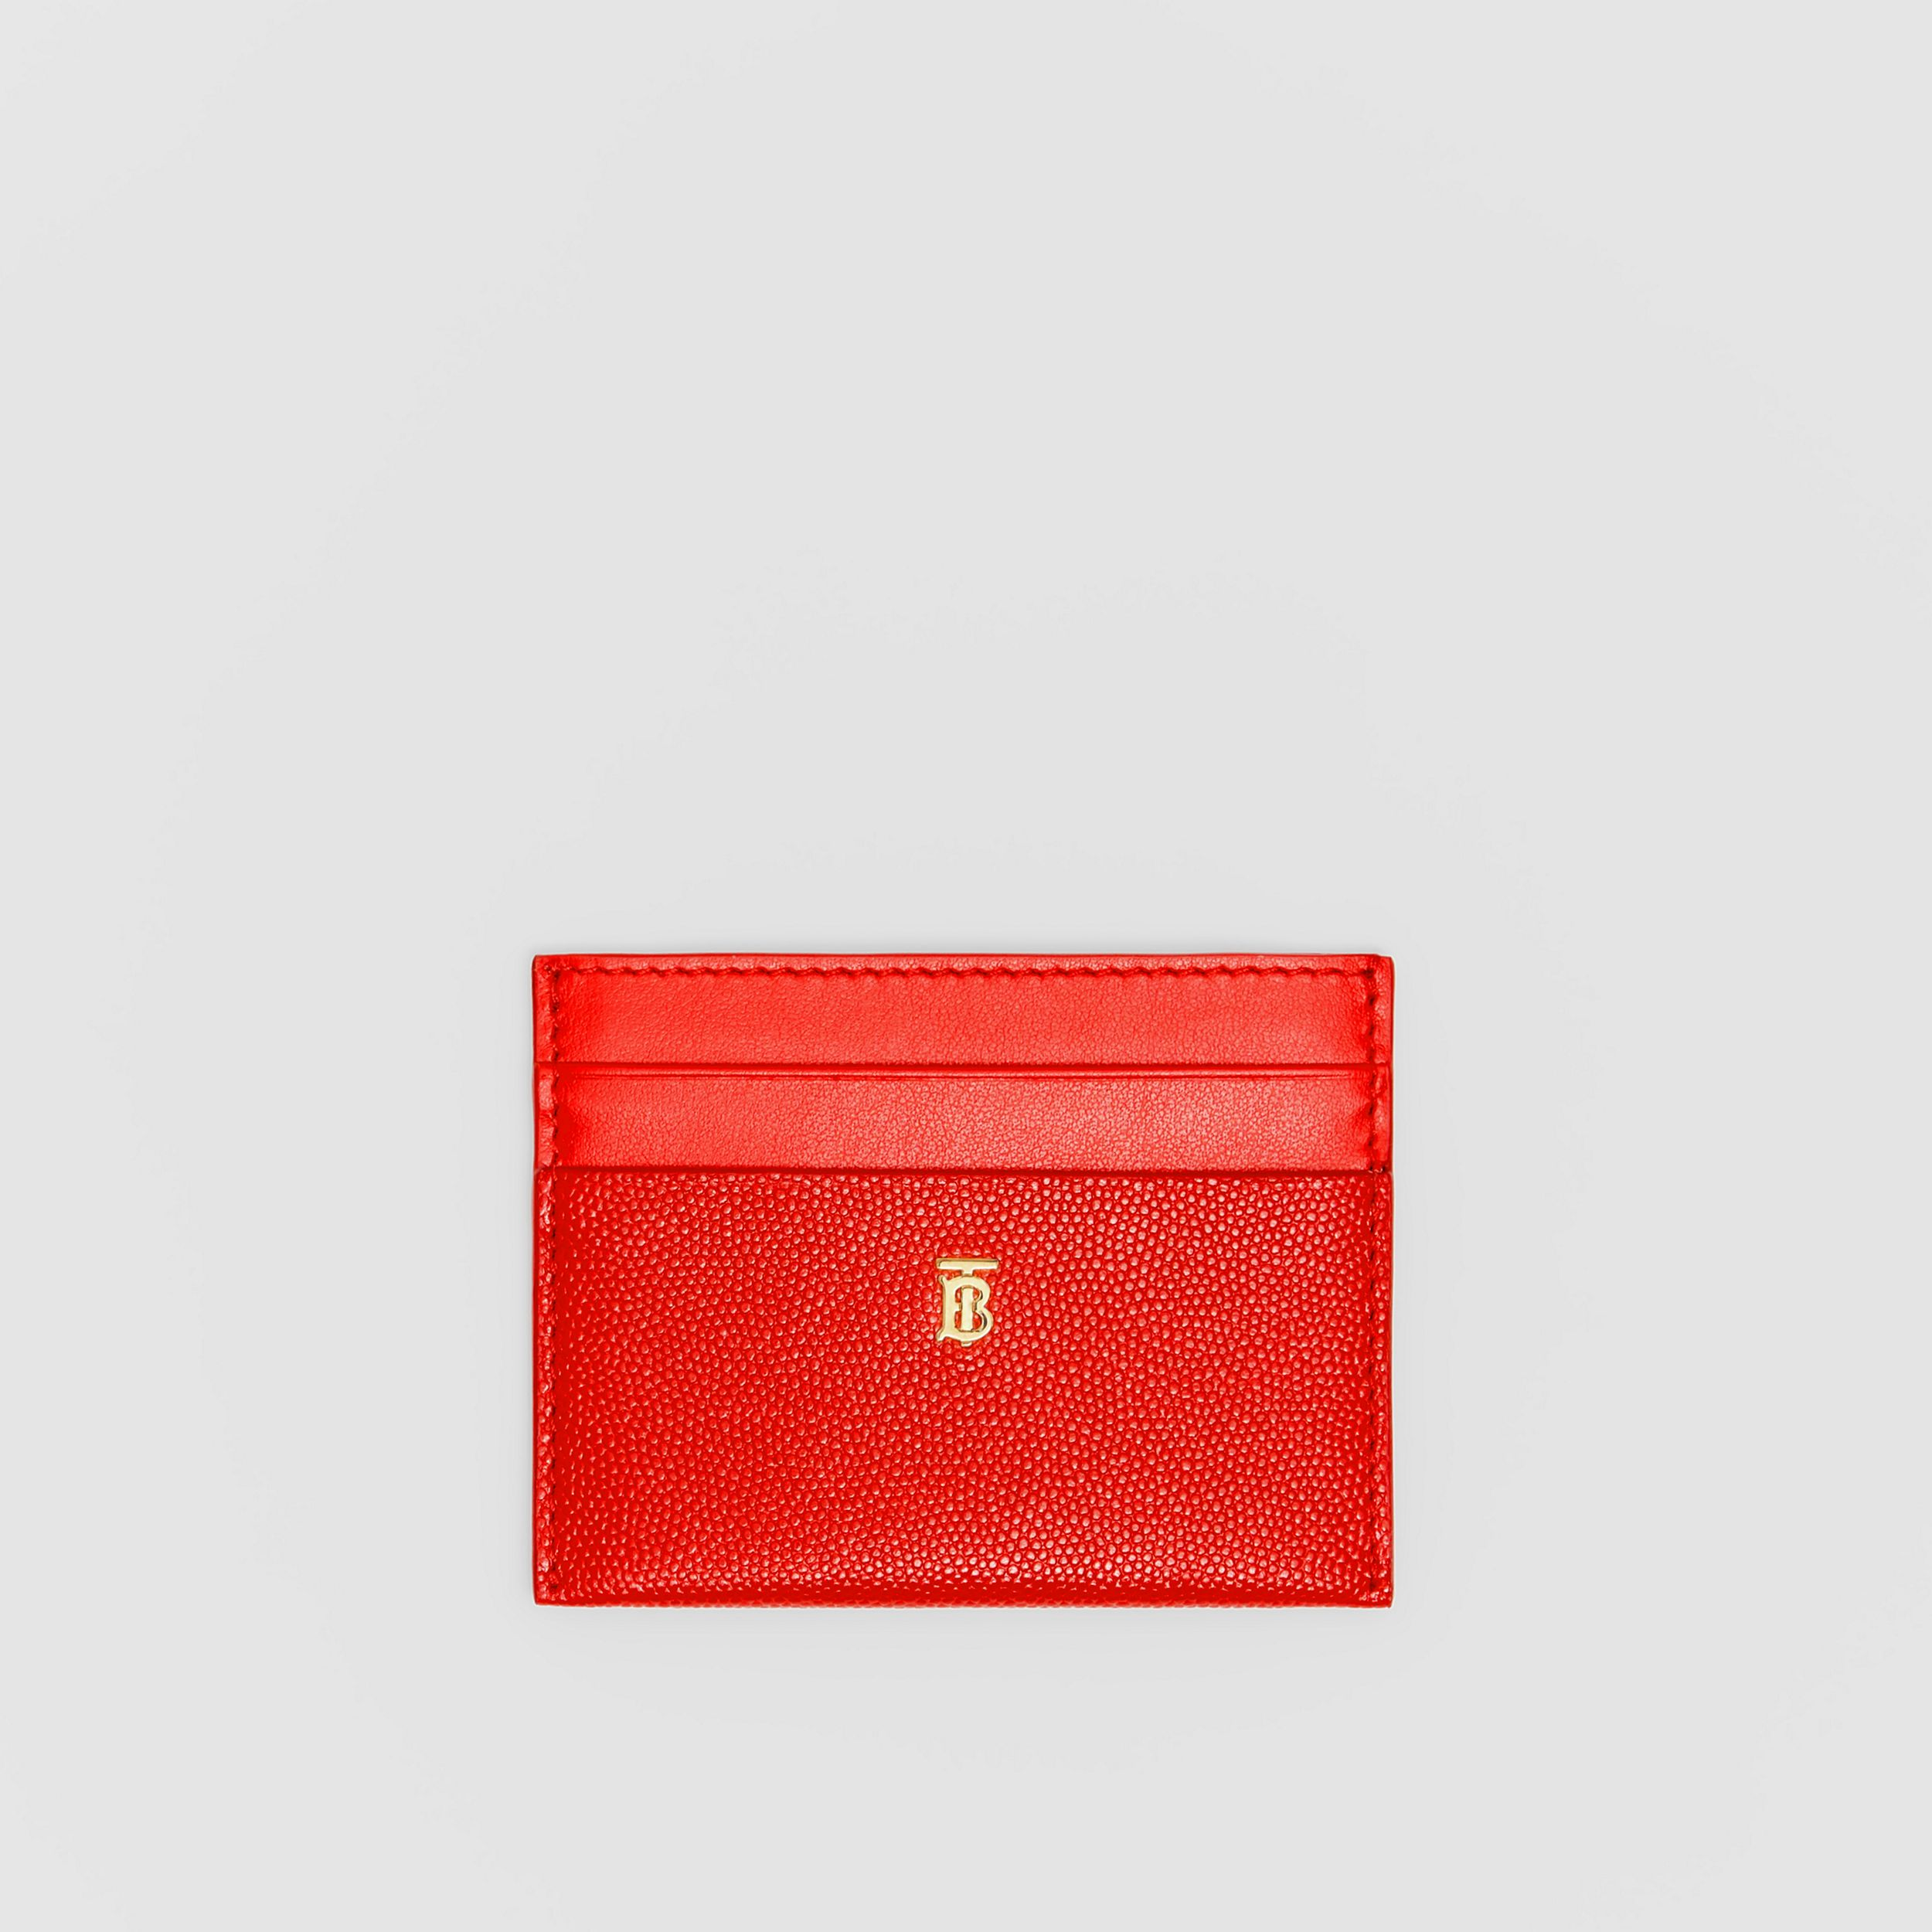 Monogram Motif Leather Card Case in Bright Red - Women | Burberry - 1